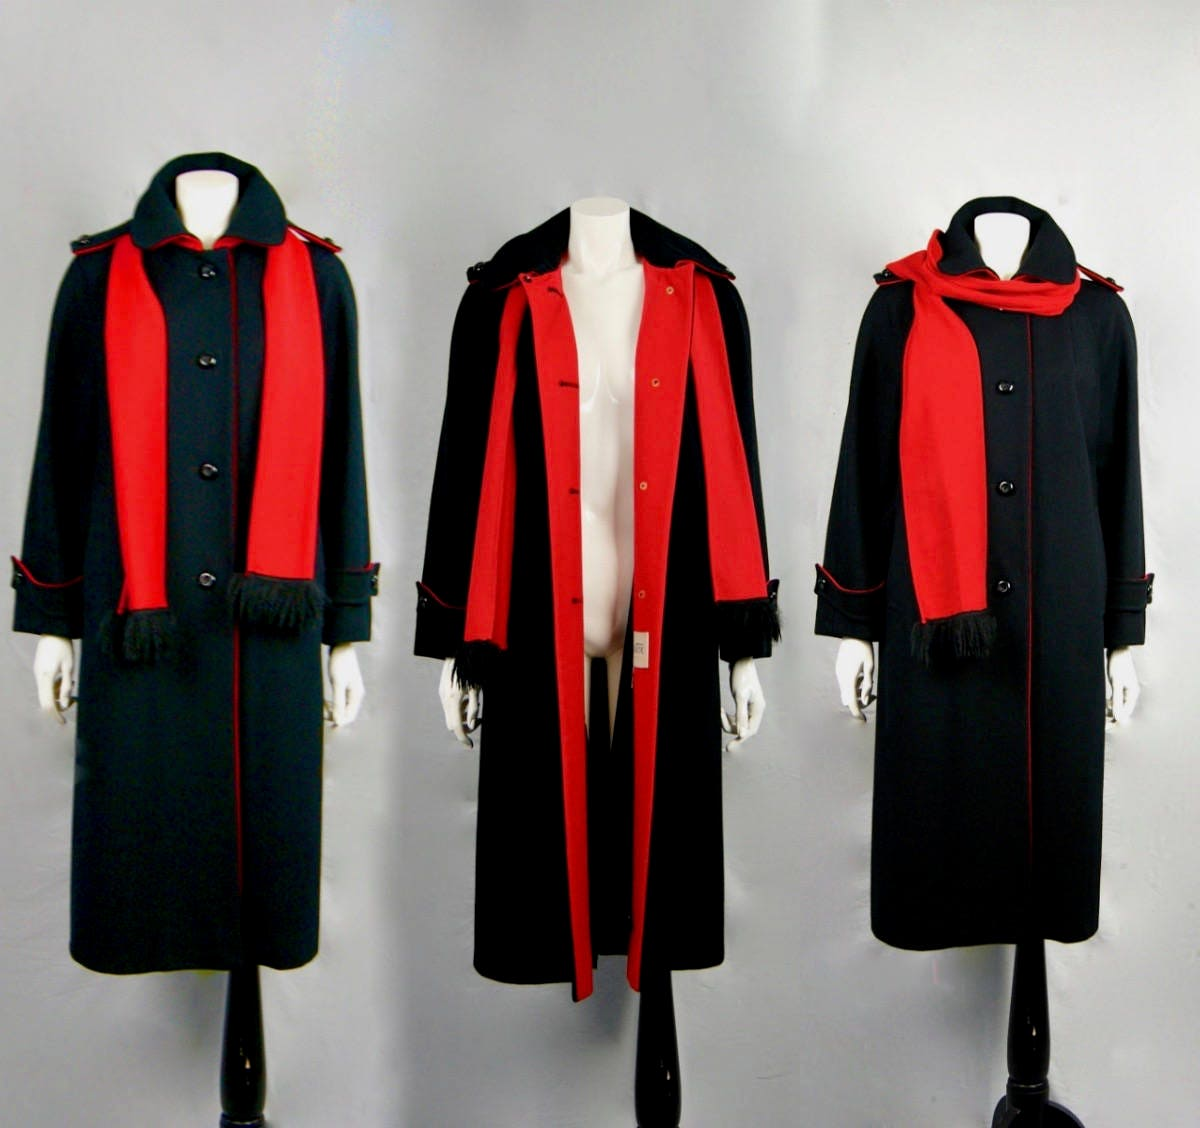 Vintage Scarf Styles -1920s to 1960s 1960S Military Inspired Pure Wool Coat With Scarf $524.43 AT vintagedancer.com